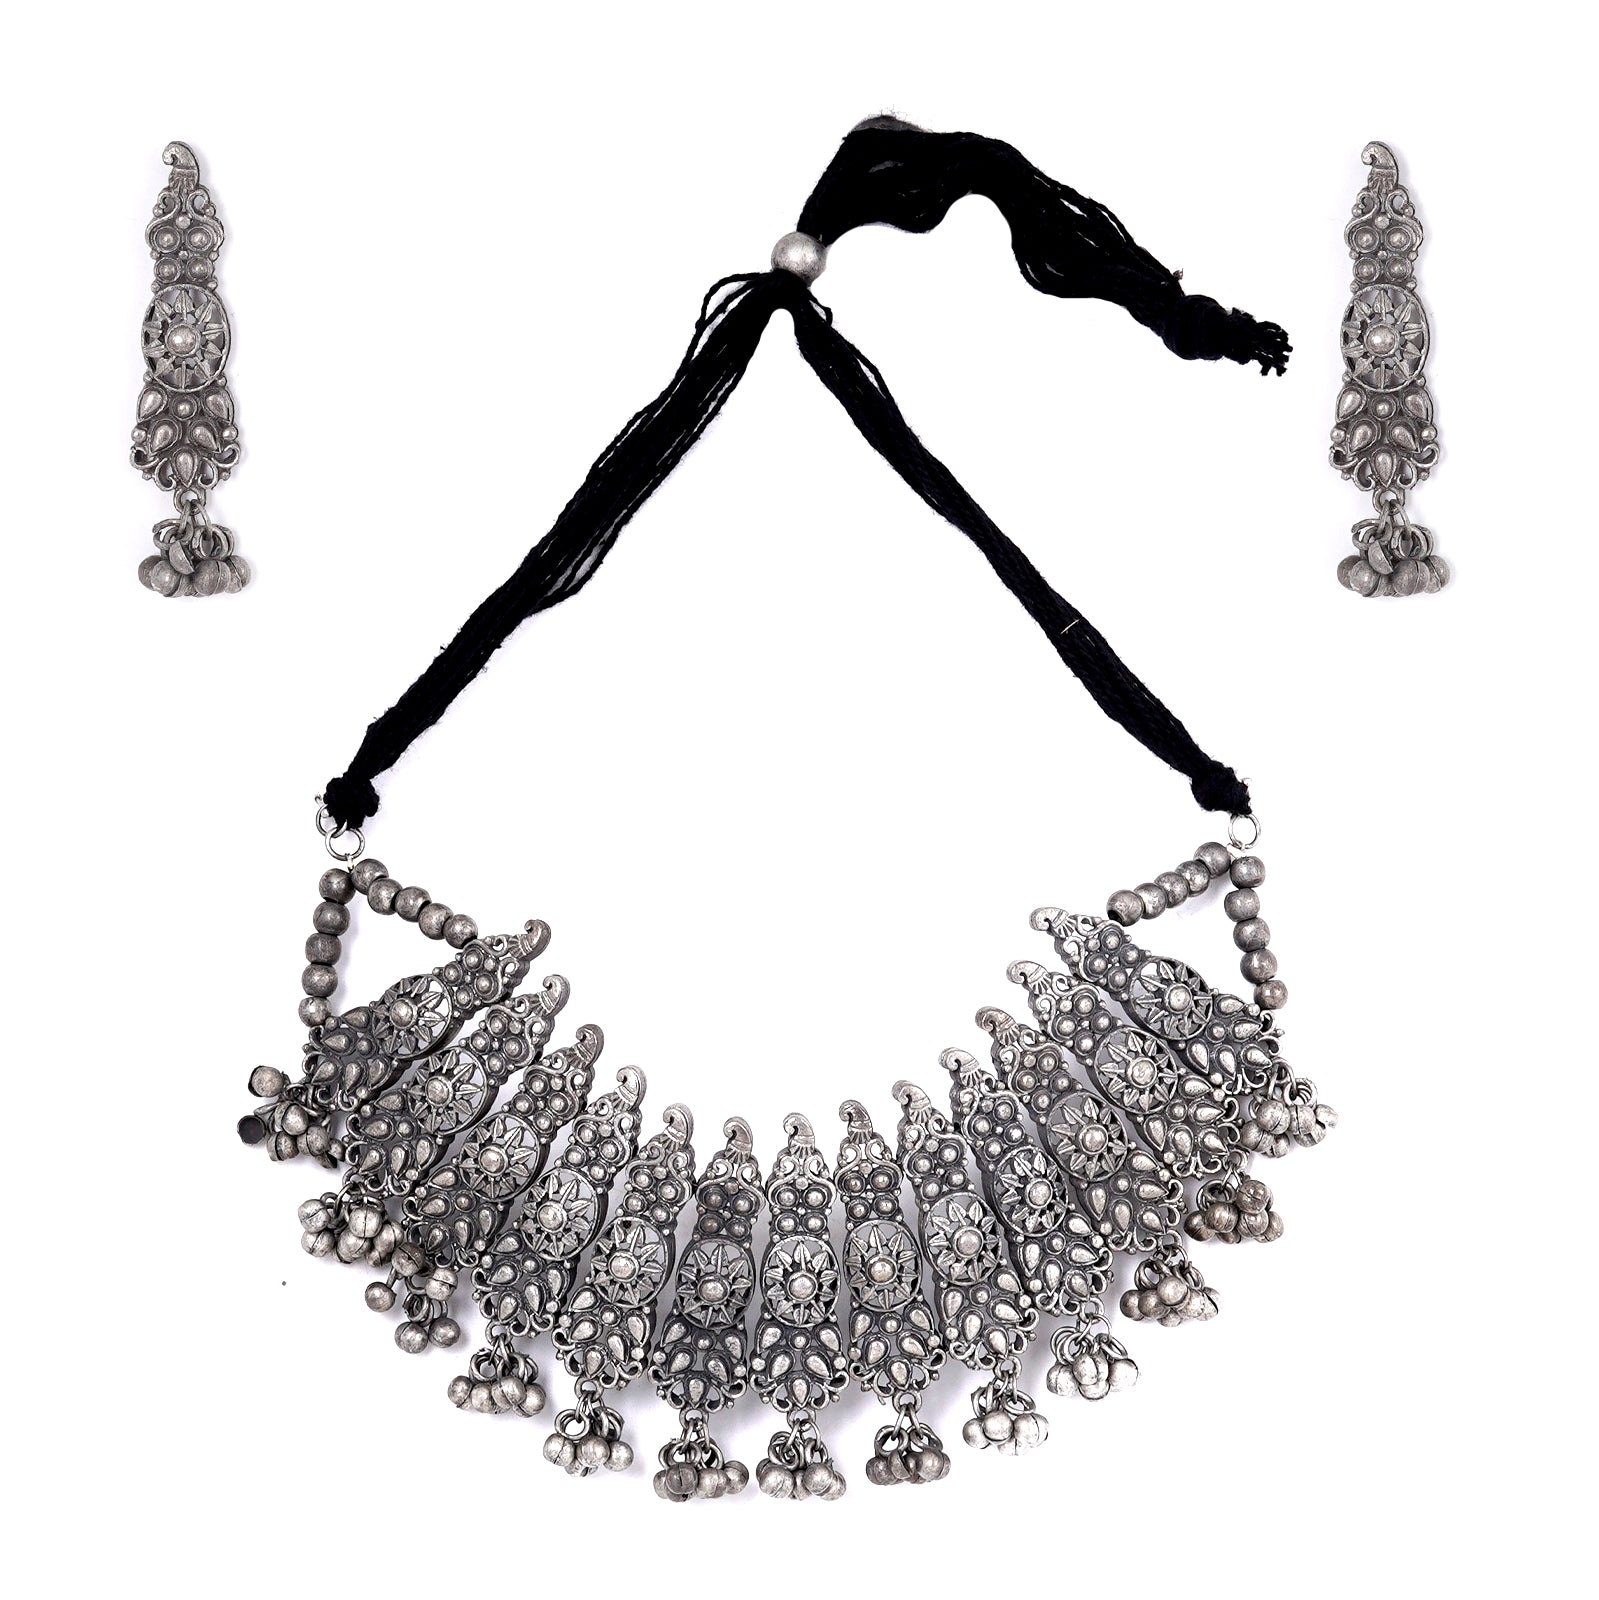 Teejh Anay Antique Silver Polish Choker Necklace Set